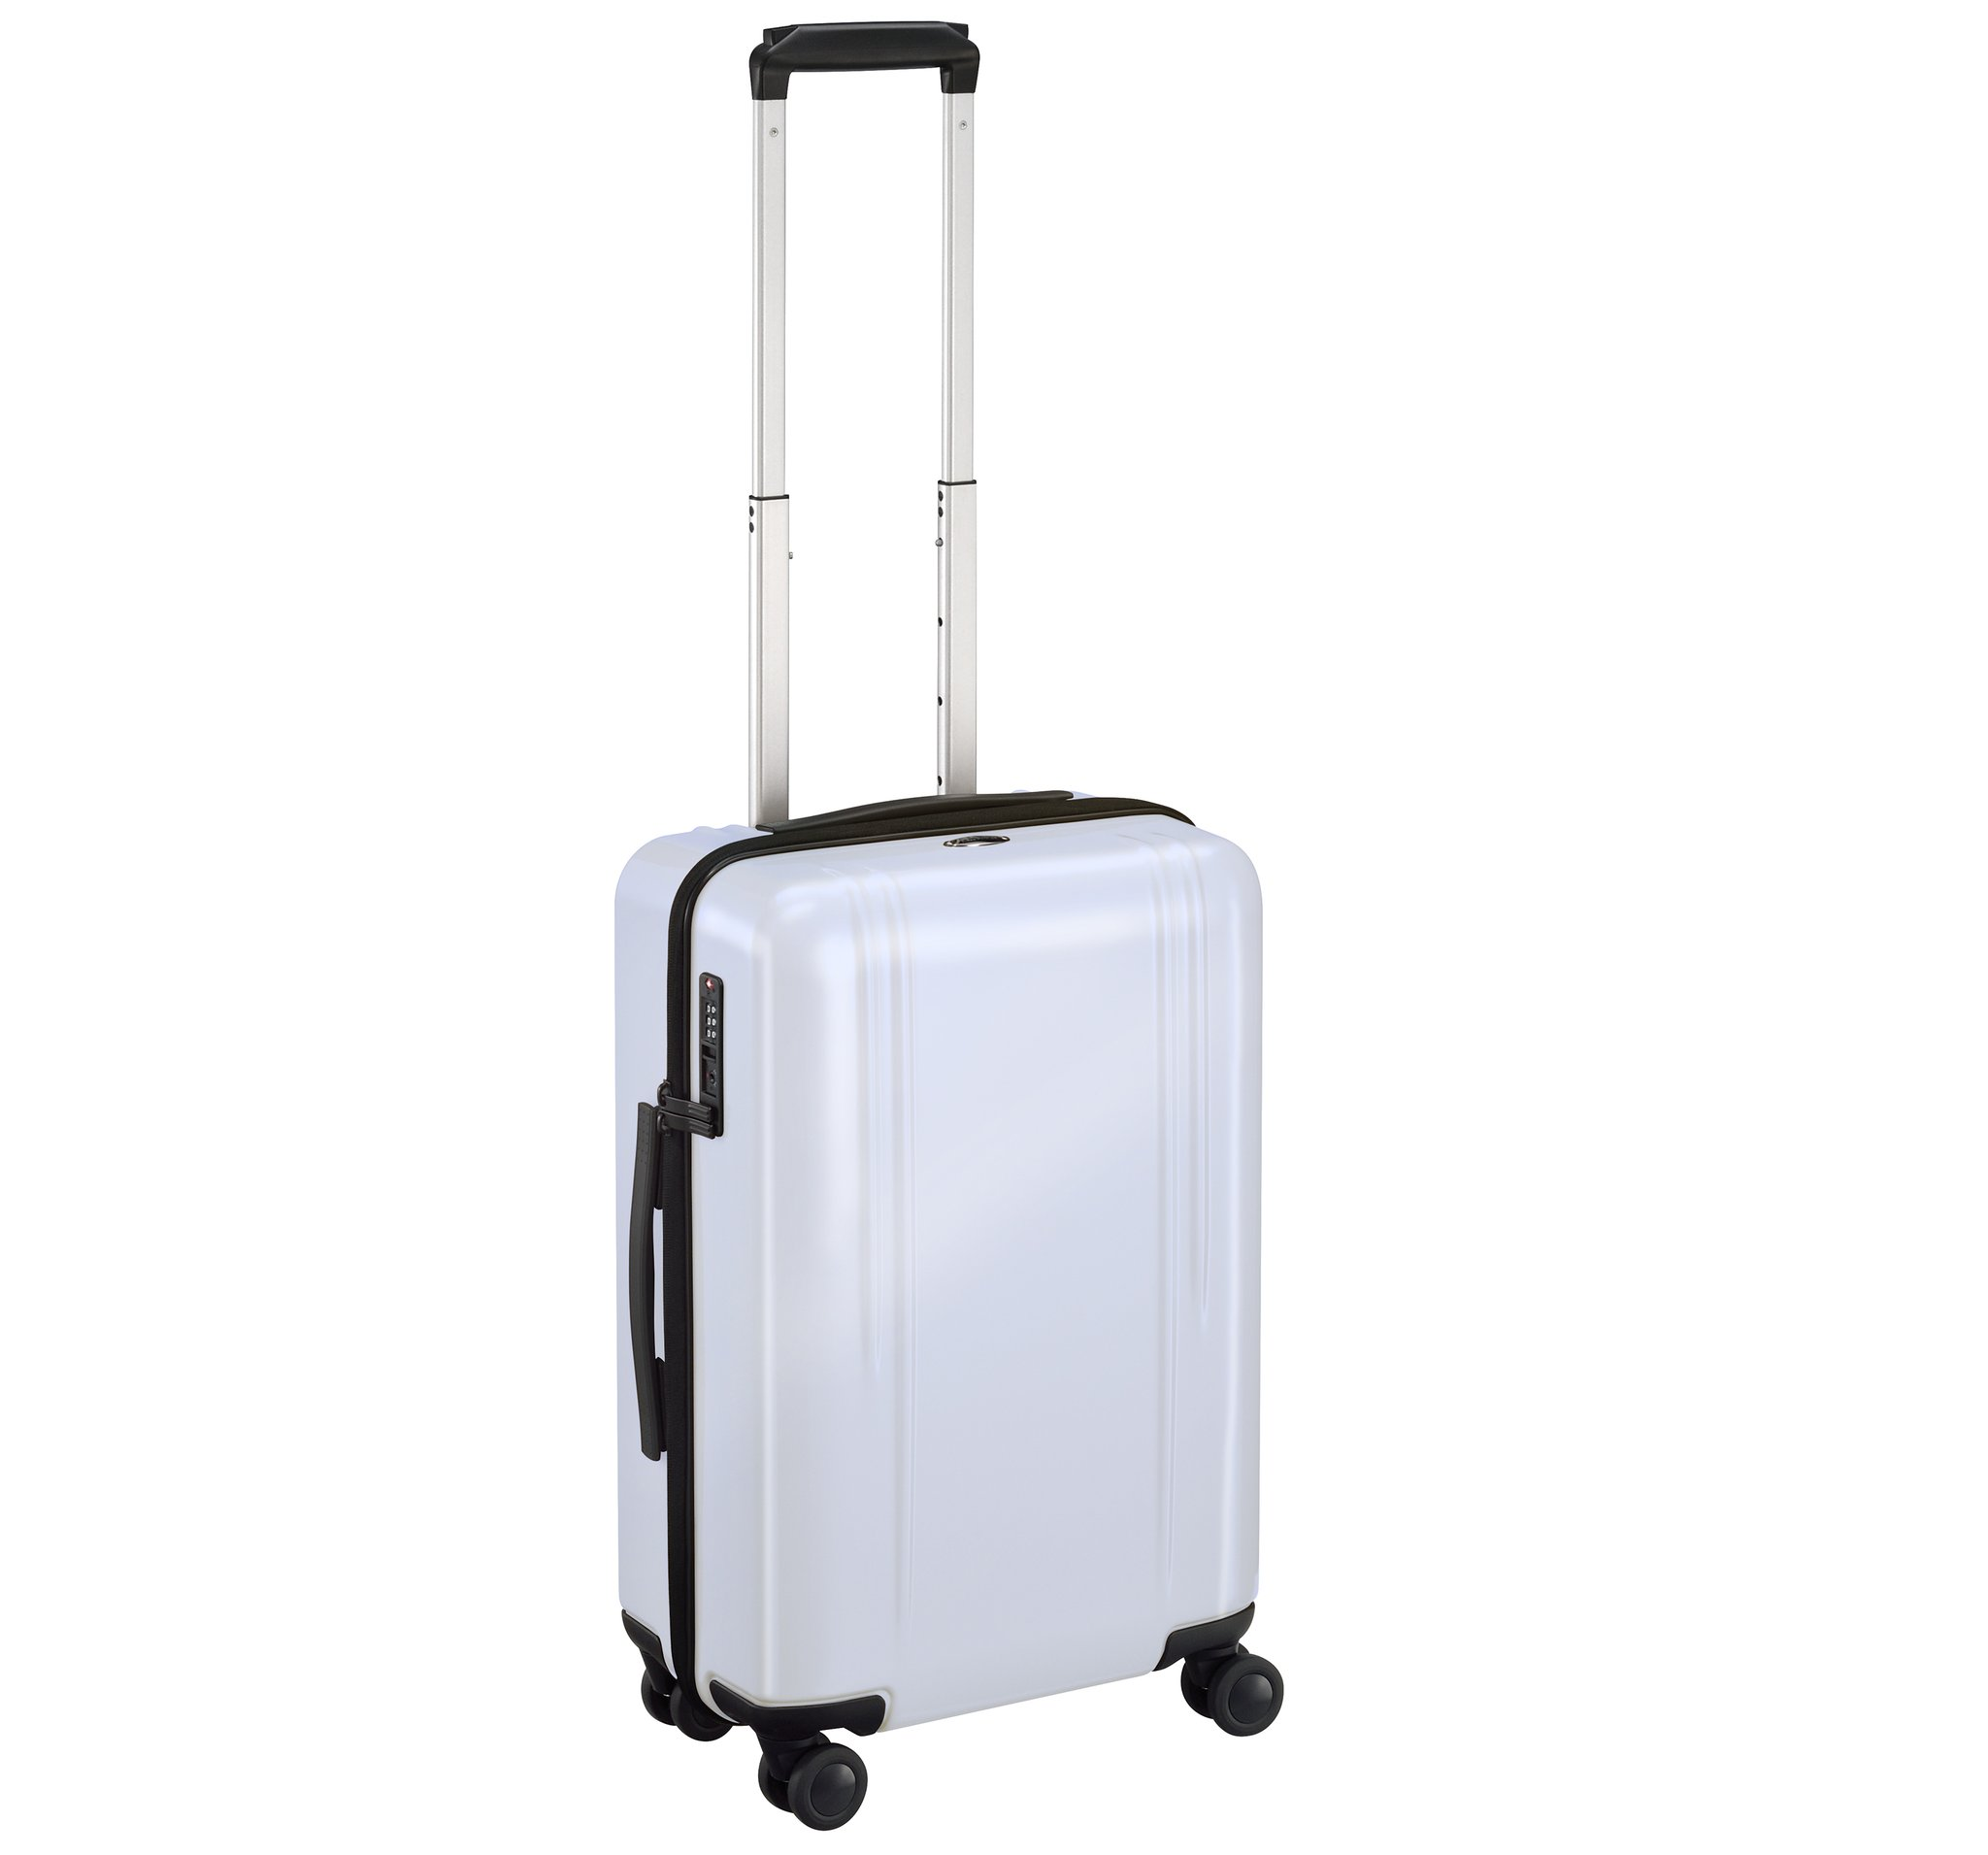 "ZRL - 22"" Domestic Lightweight Luggage by Zero Halliburton (Color: White)"